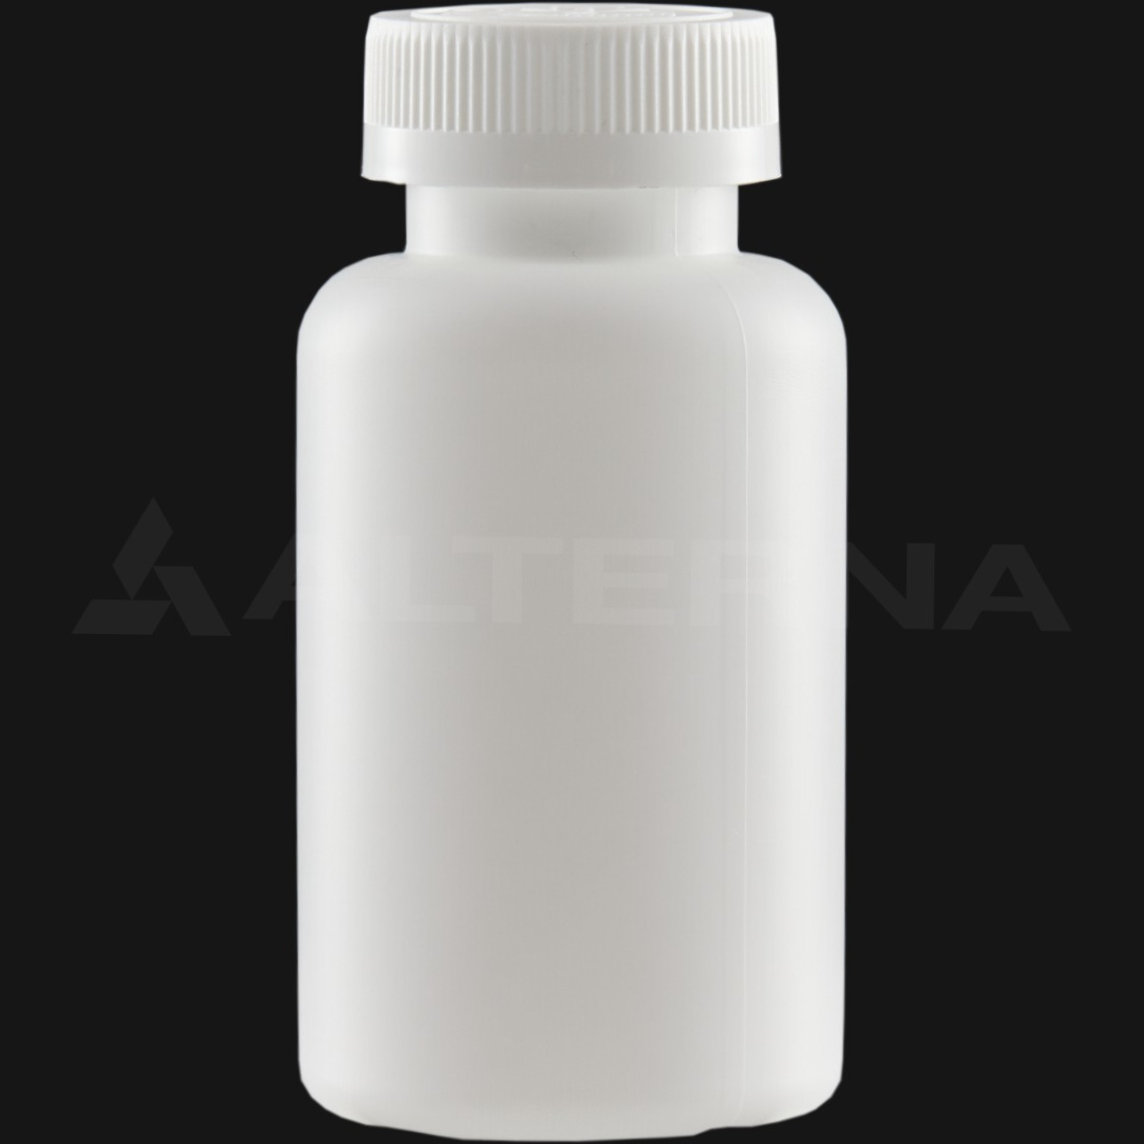 200 ml HDPE Pill Bottle with 38 mm Child Resistant Cap